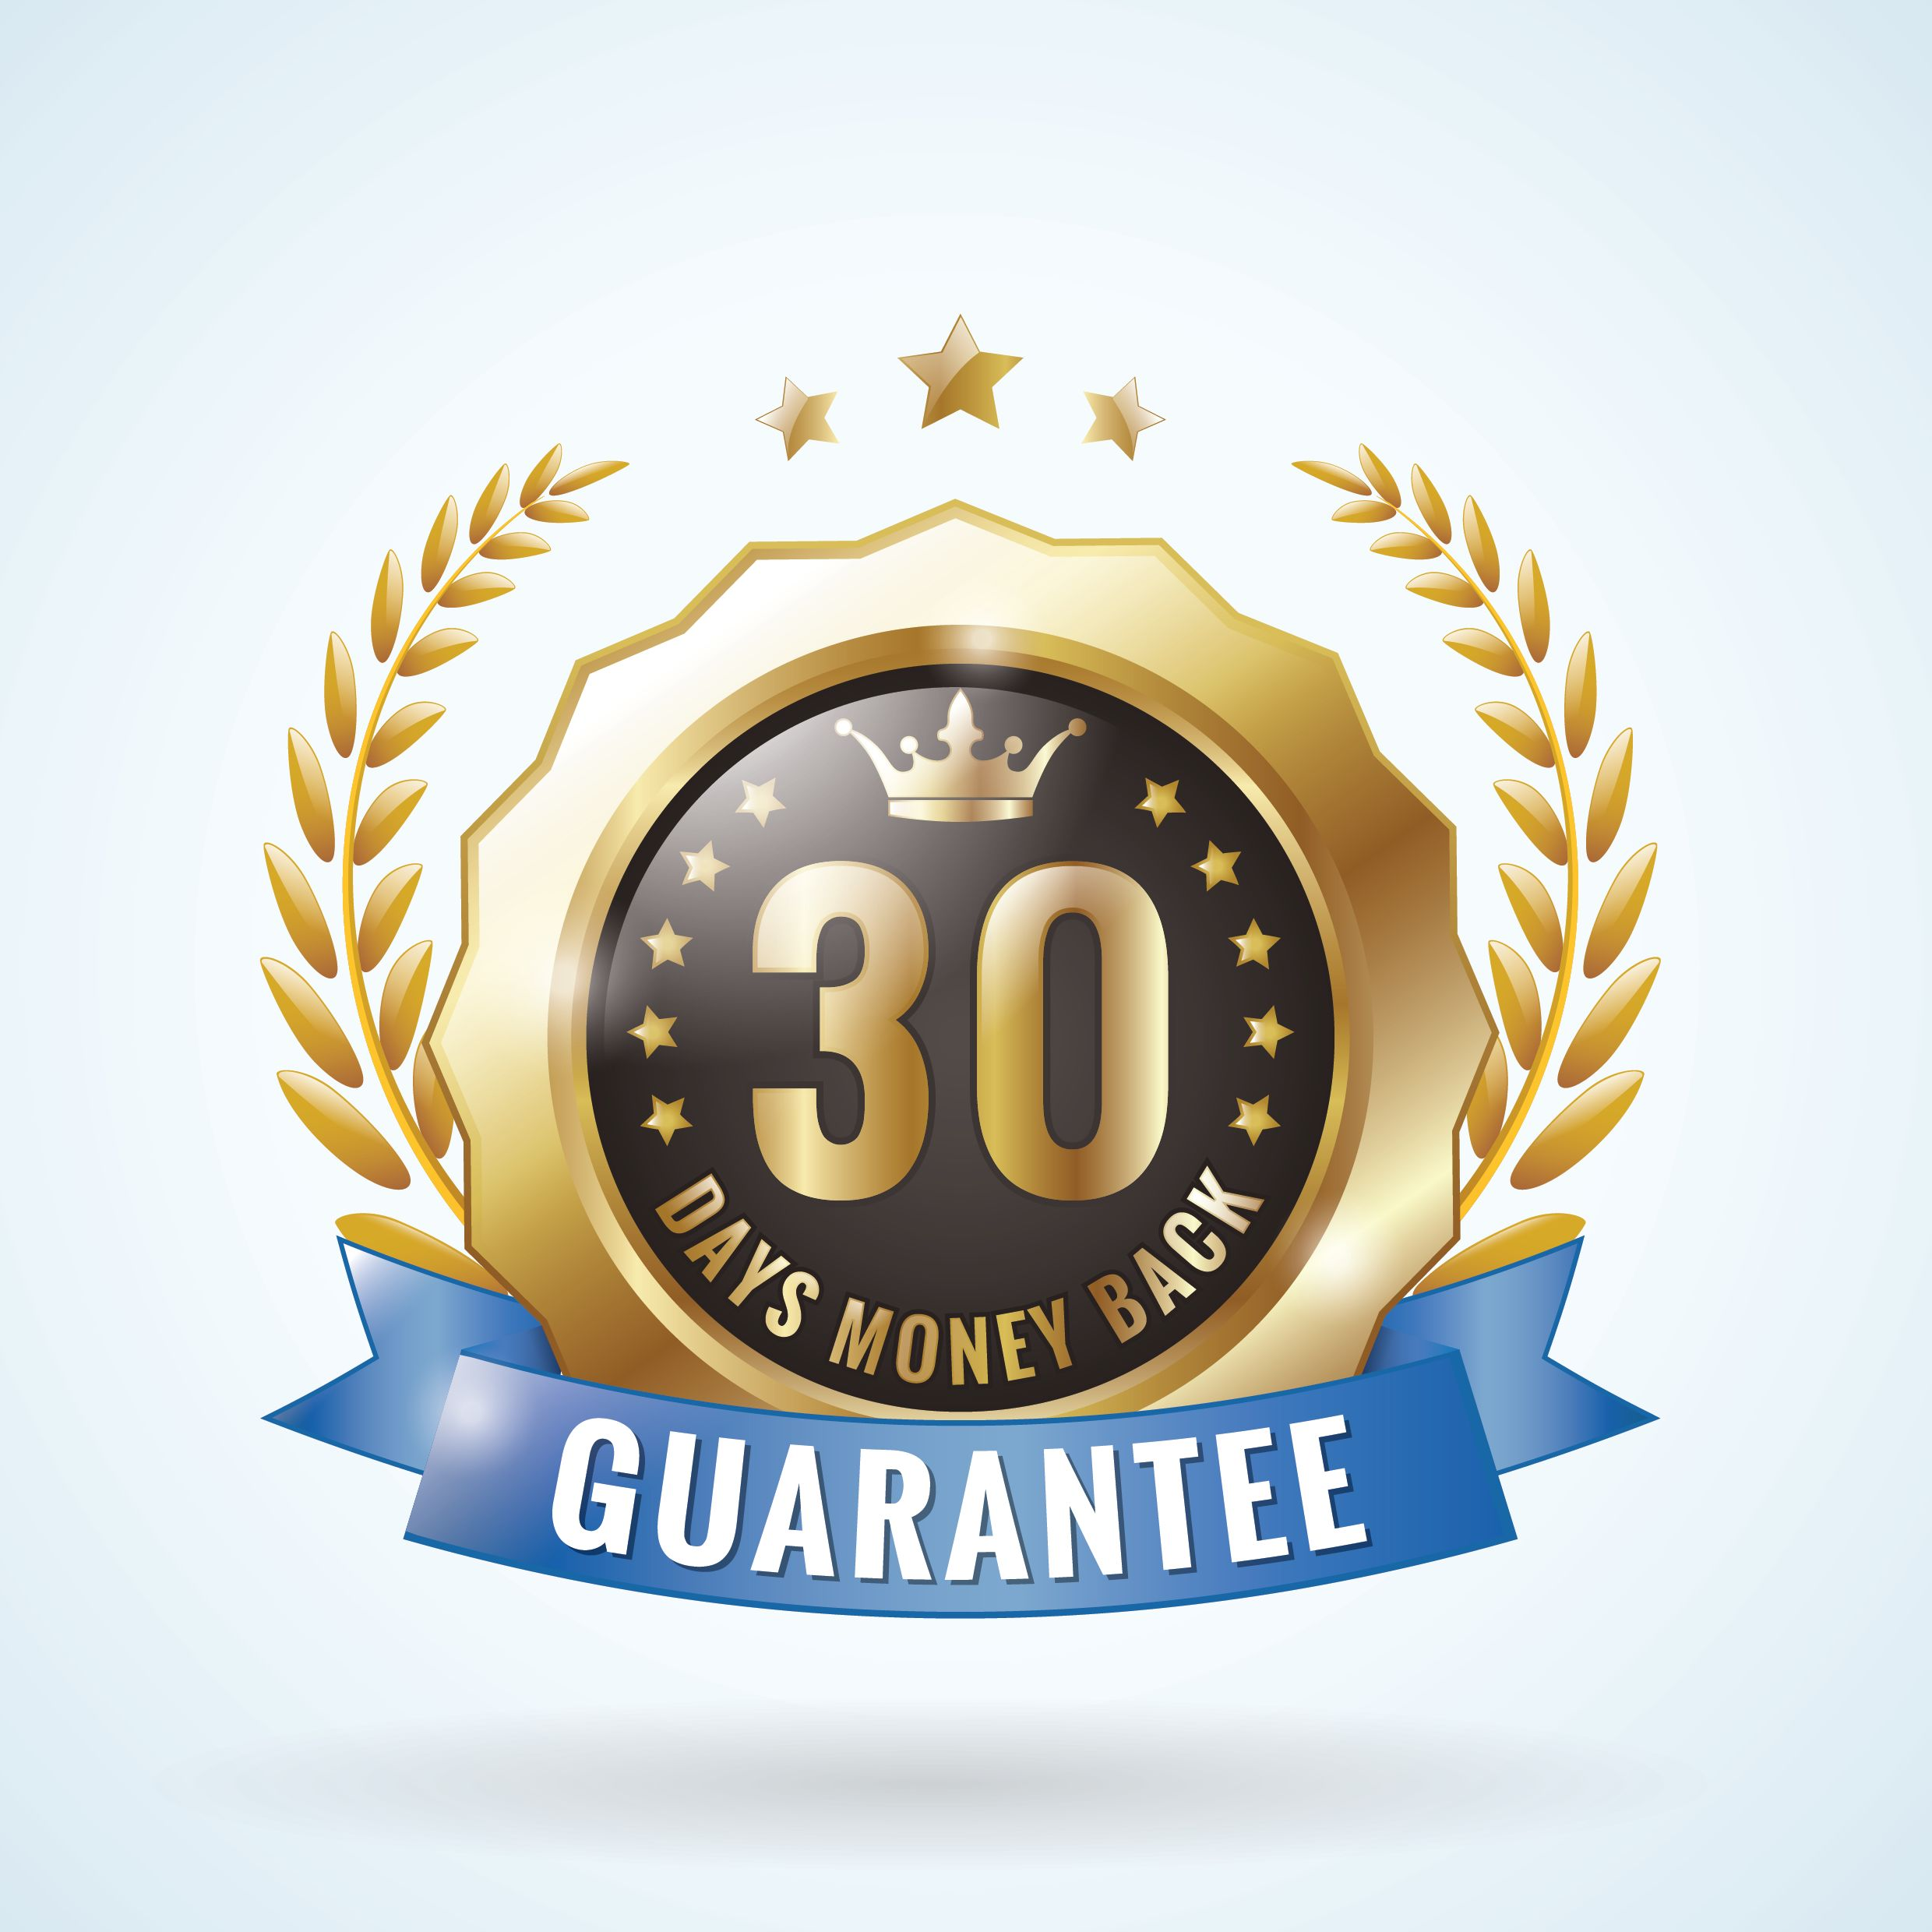 30-day money-back guarantee badge